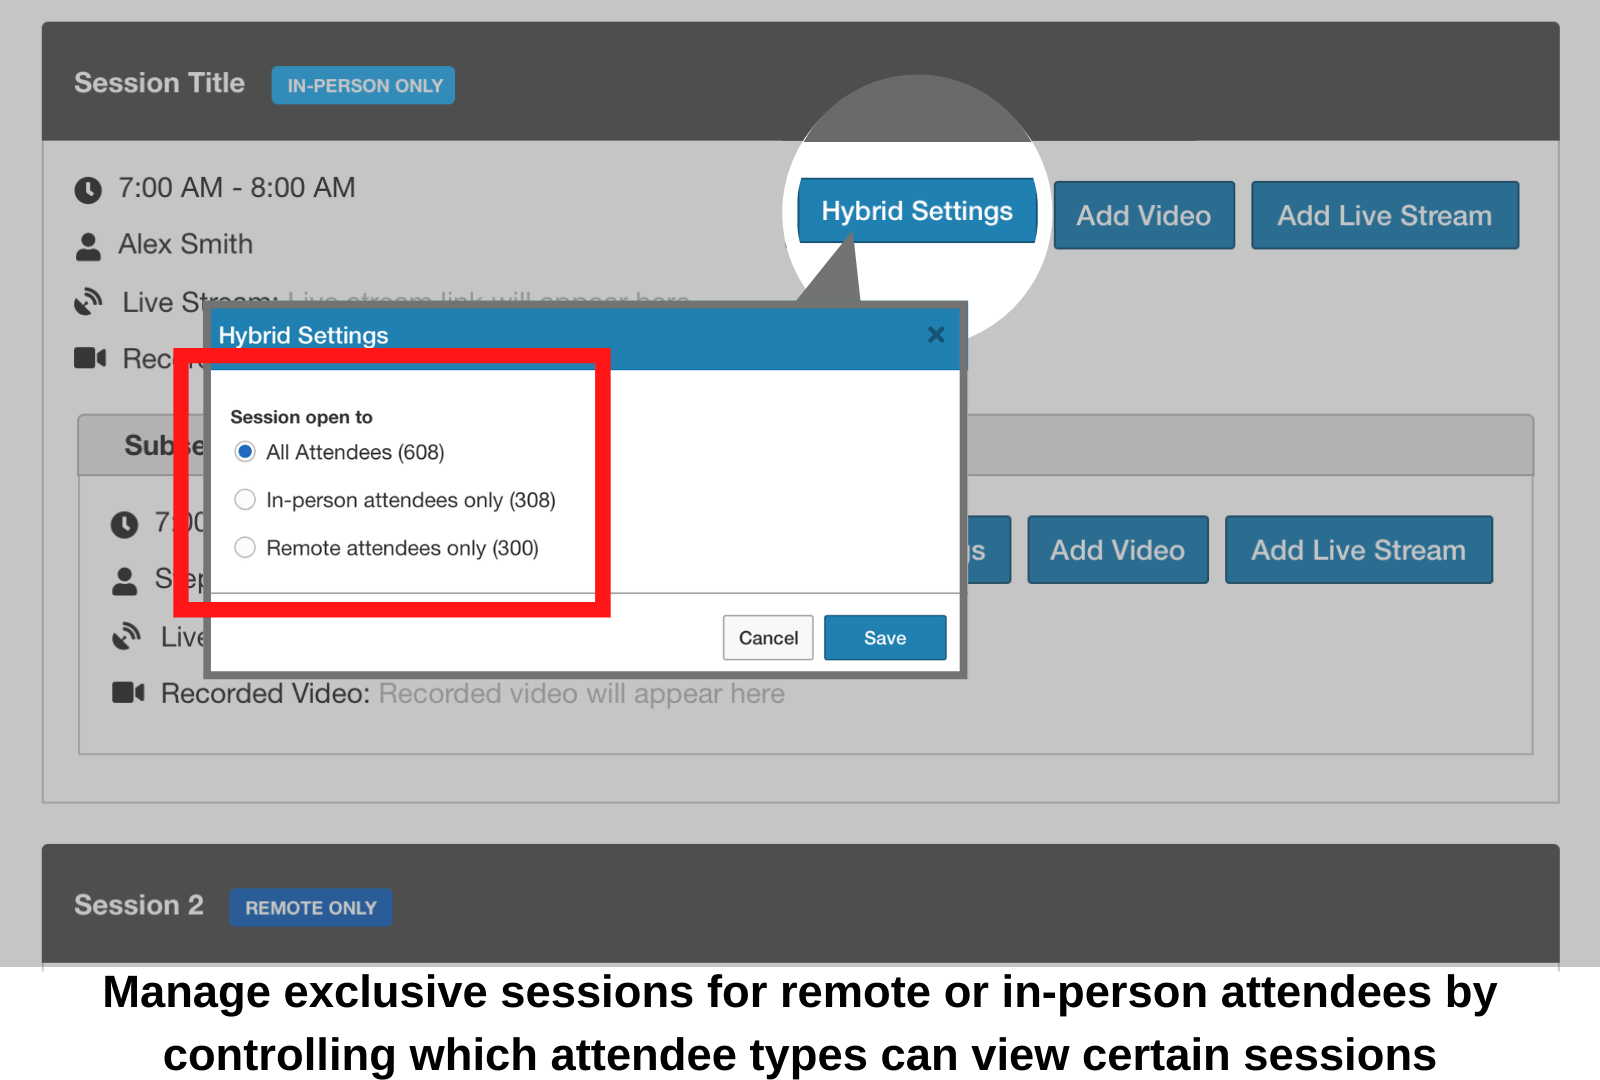 Manage exclusive sessions for remote or in-person attendees by controlling which attendee types can view certain sessions.